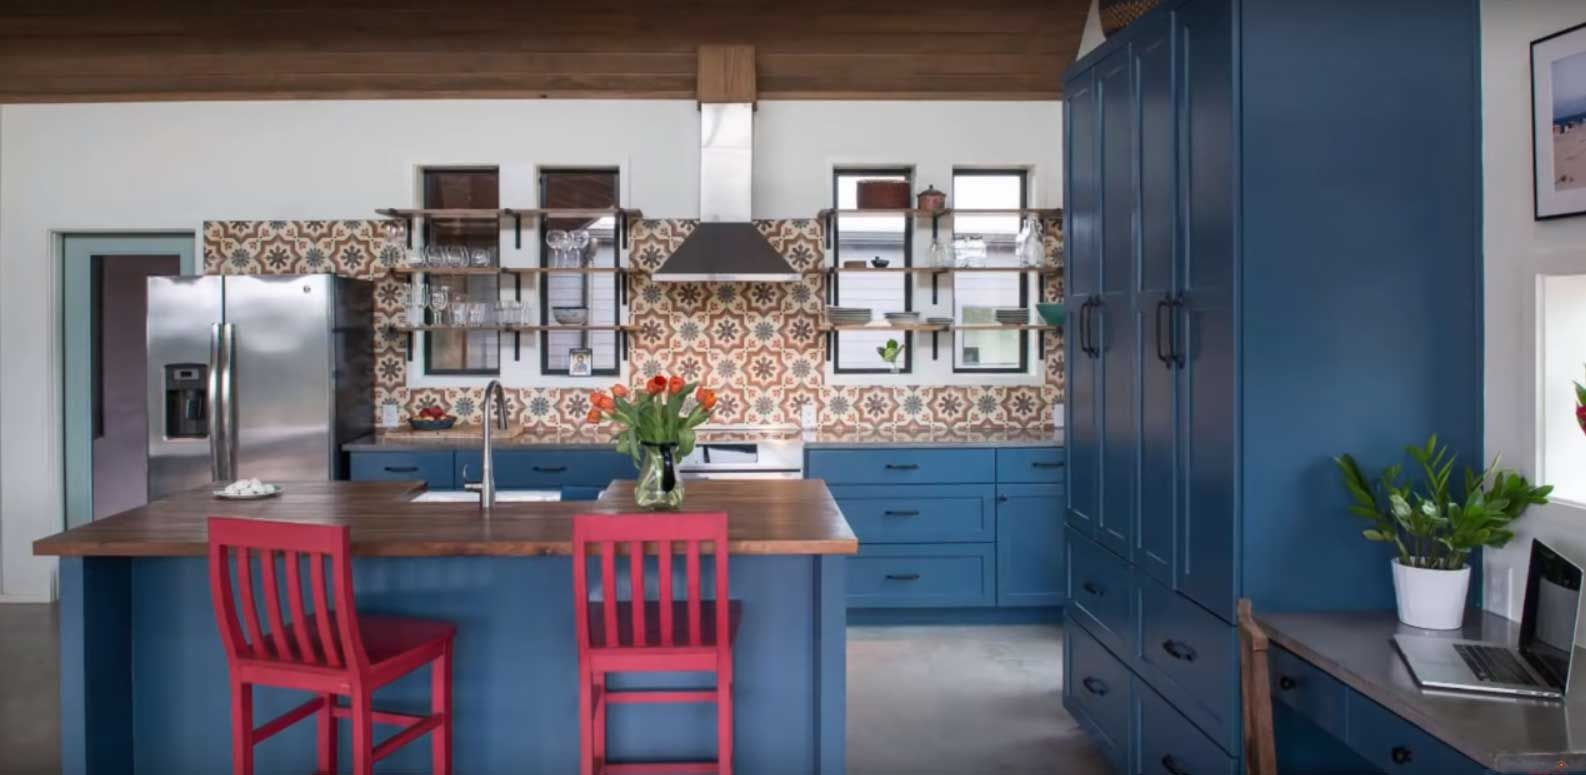 Blue Kitchen Cabinets Miami Blue Kitchen Cabinets Blue Kitchens Kitchen Cabinets